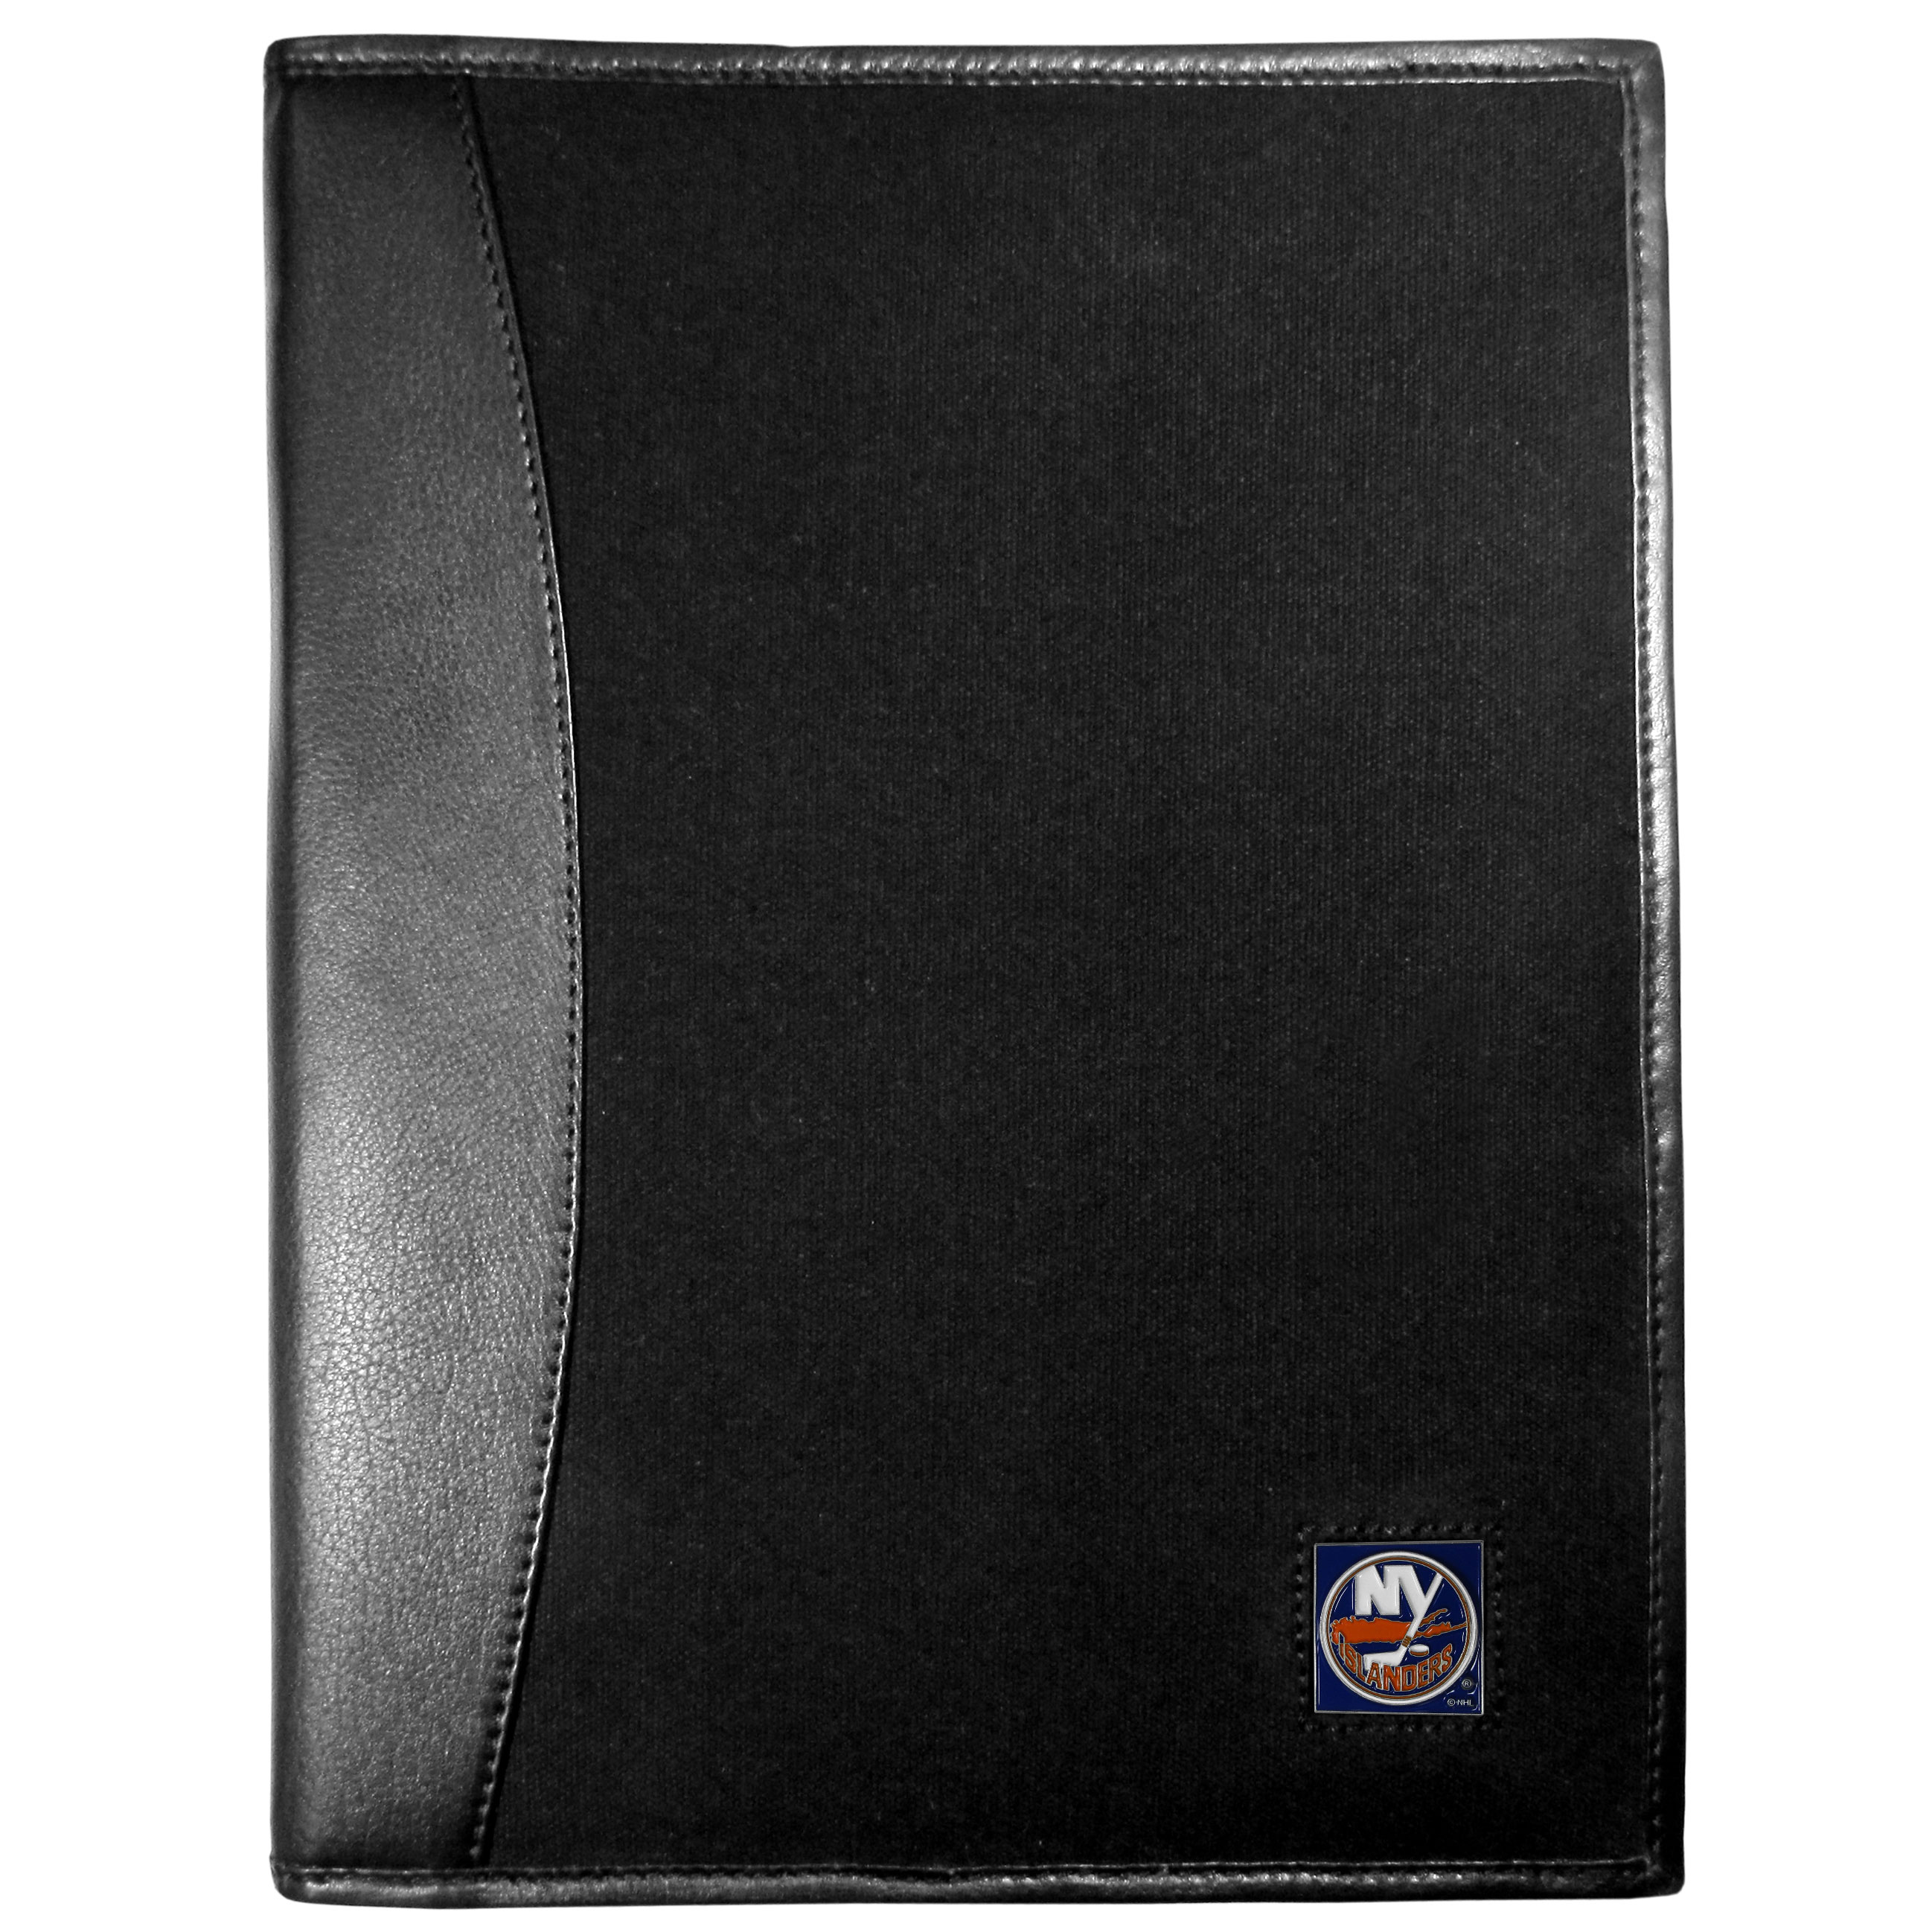 New York Islanders® Leather and Canvas Padfolio - Our leather and canvas padfolio perfectly blends form and function. The attractive portfolio is bound in fine grain leather with an attractive canvas finish and the interior is a soft nylon. This high quality business accessory also features a fully cast metal New York Islanders® emblem that is subtly set in the corner of the organizer. It is packed with features like 6 card slots for badges, business cards, hotel keys or credit cards and ID with a large pocket for loose papers and a writing tablet slot making it a must-have for the professional on the go.